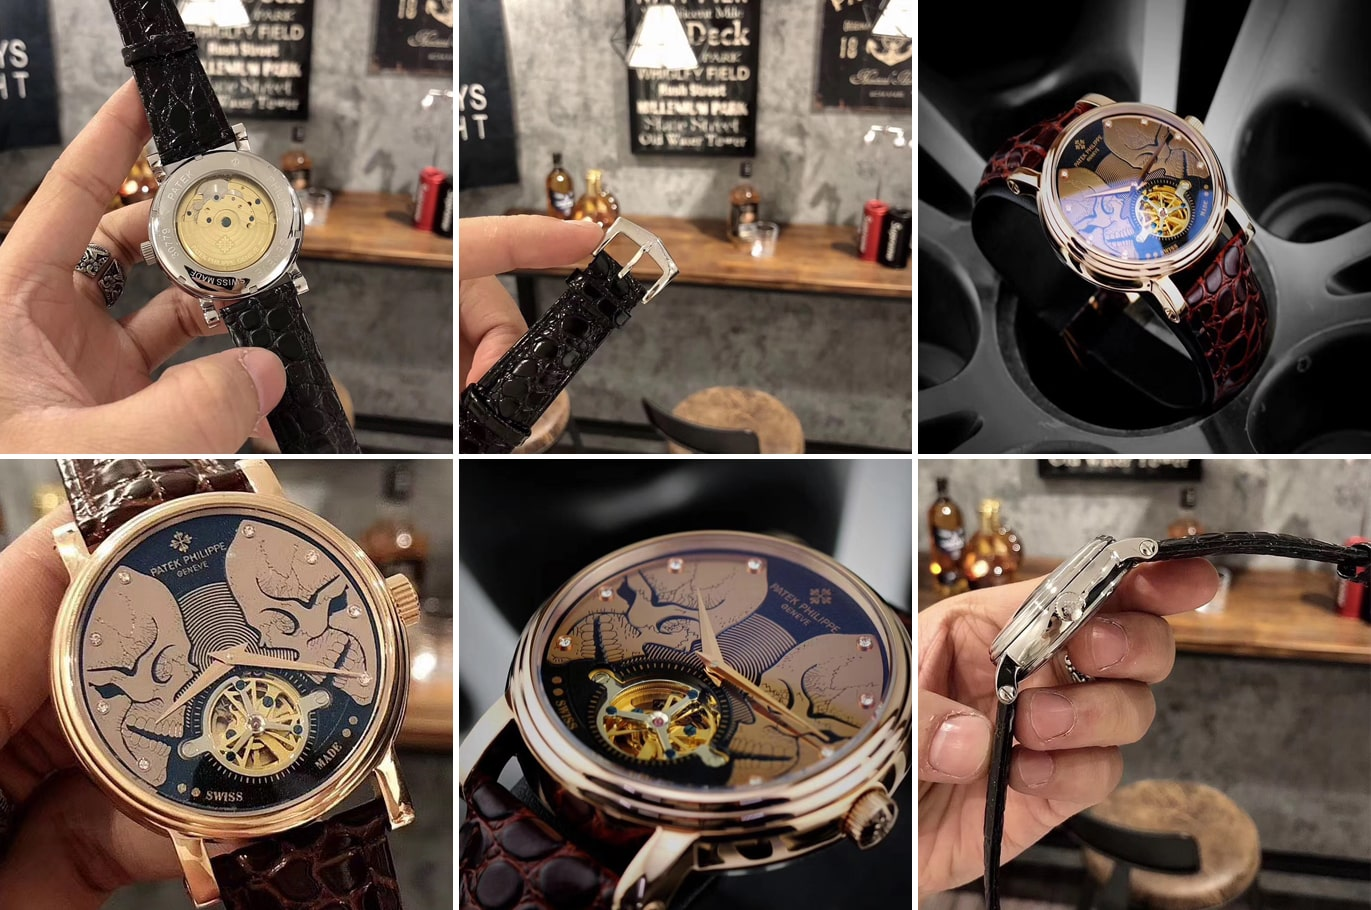 Hinh-anh-thuc-te-Dong-ho-PATEK-PHILIPPE-GRAND-COMPLICATIONS-1807500